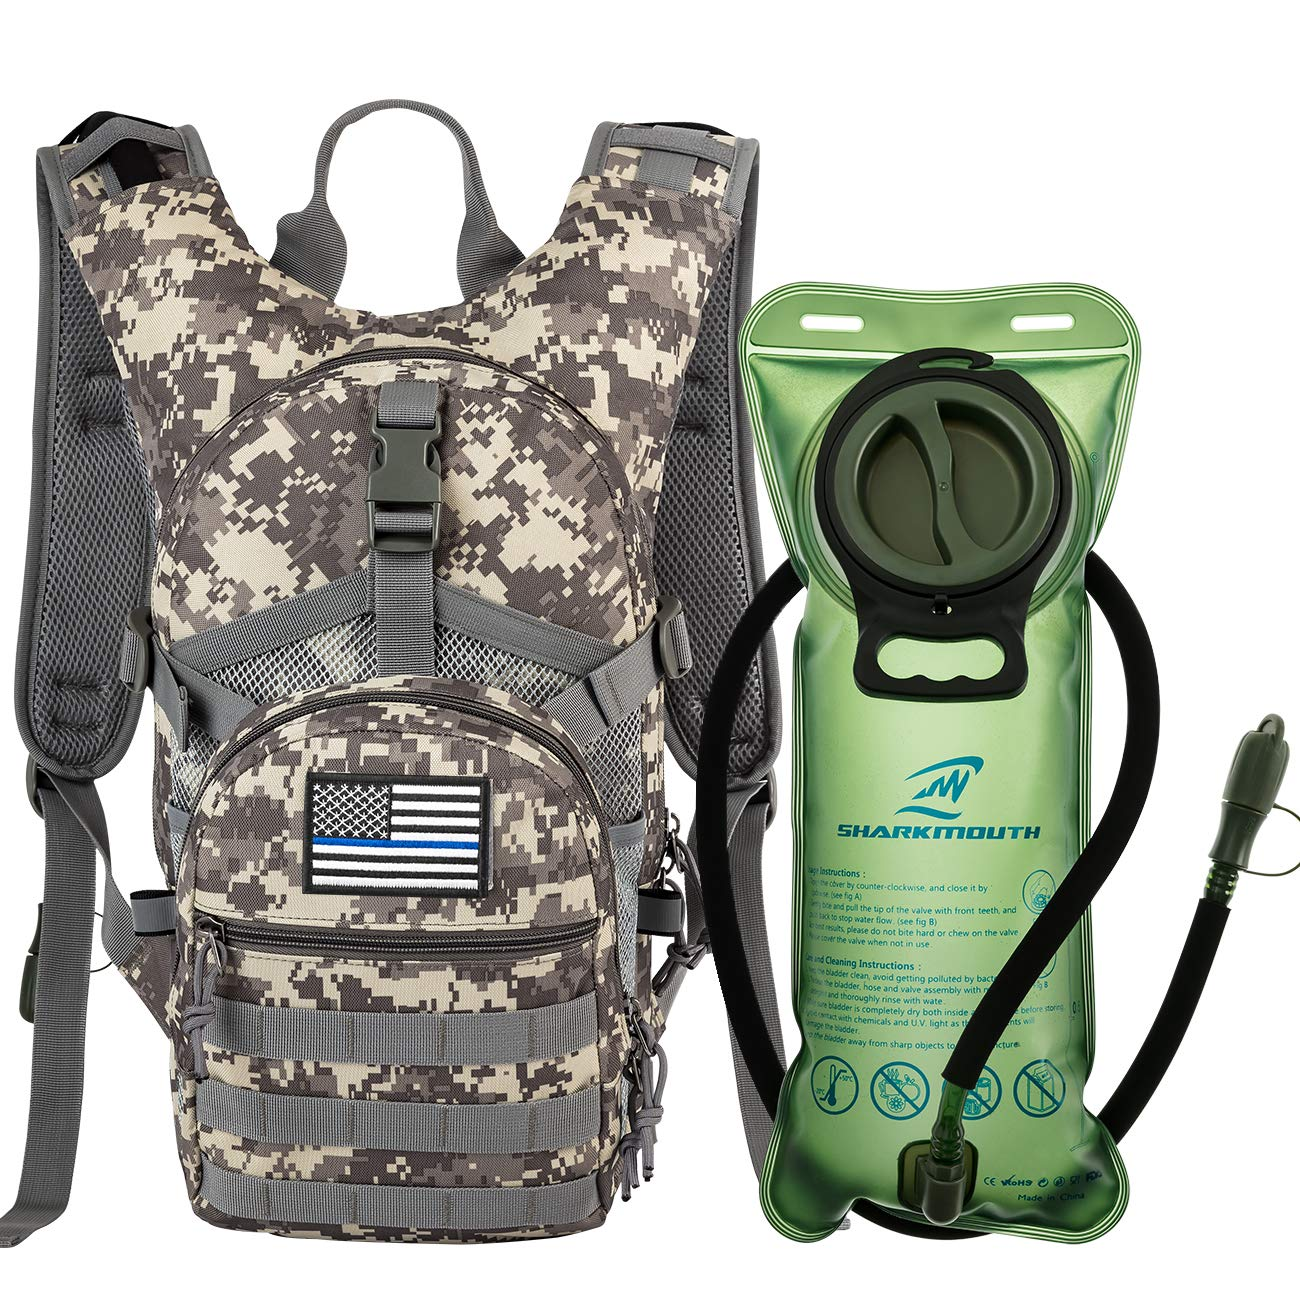 SHARKMOUTH Tactical MOLLE Hydration Pack Backpack 900D with 2L Leak-Proof Water Bladder, Keep Liquids Cool for Up to 4 Hours, Outdoor Daypack for Hiking, Running, Hunting, USA Flag Patch, Camo